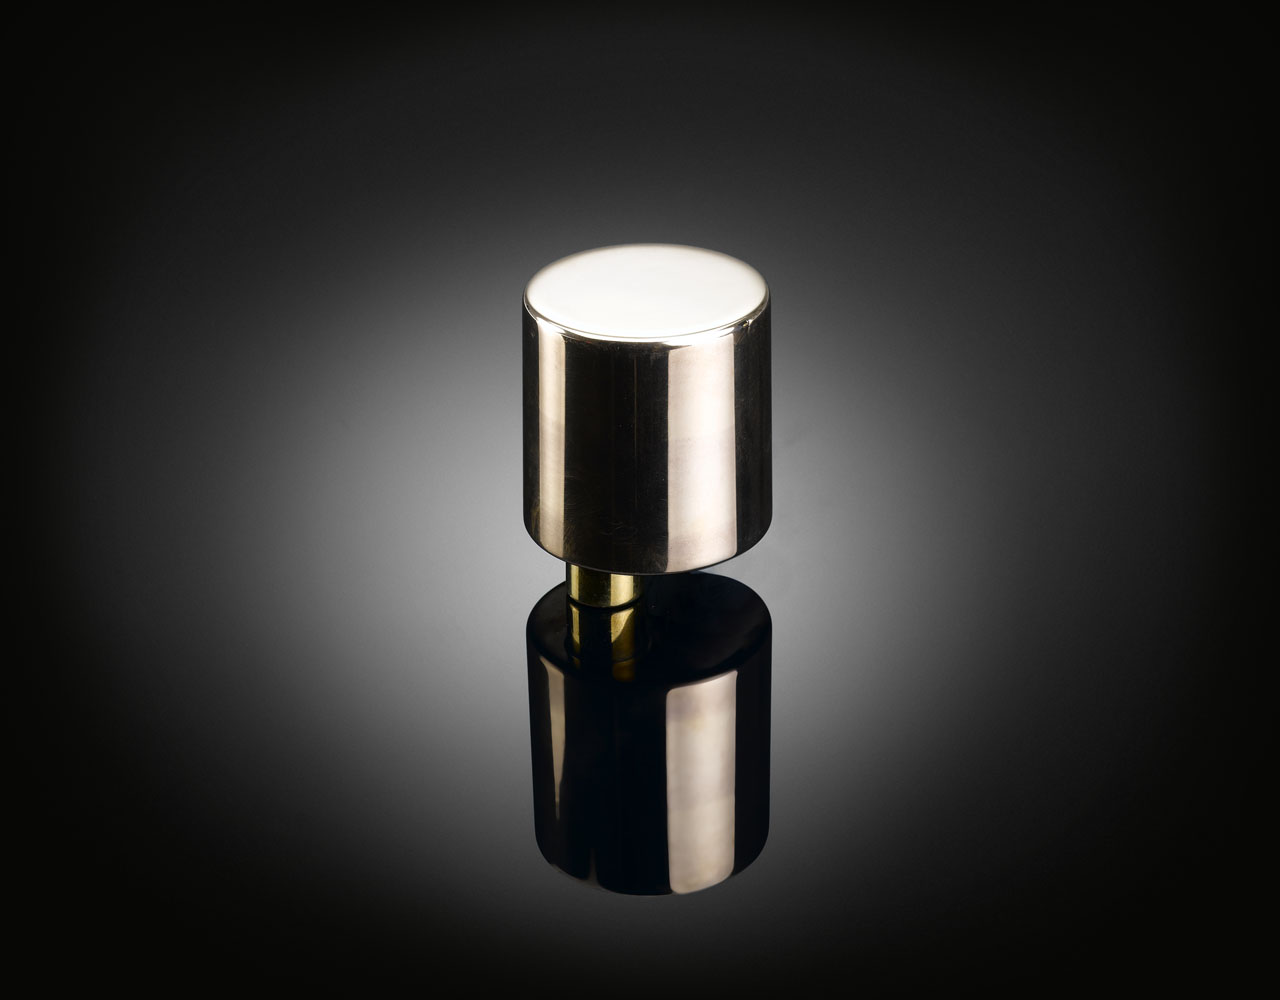 Bespoke eccentric polished brass door knob designed by Terrence Woodgate supplied by izé